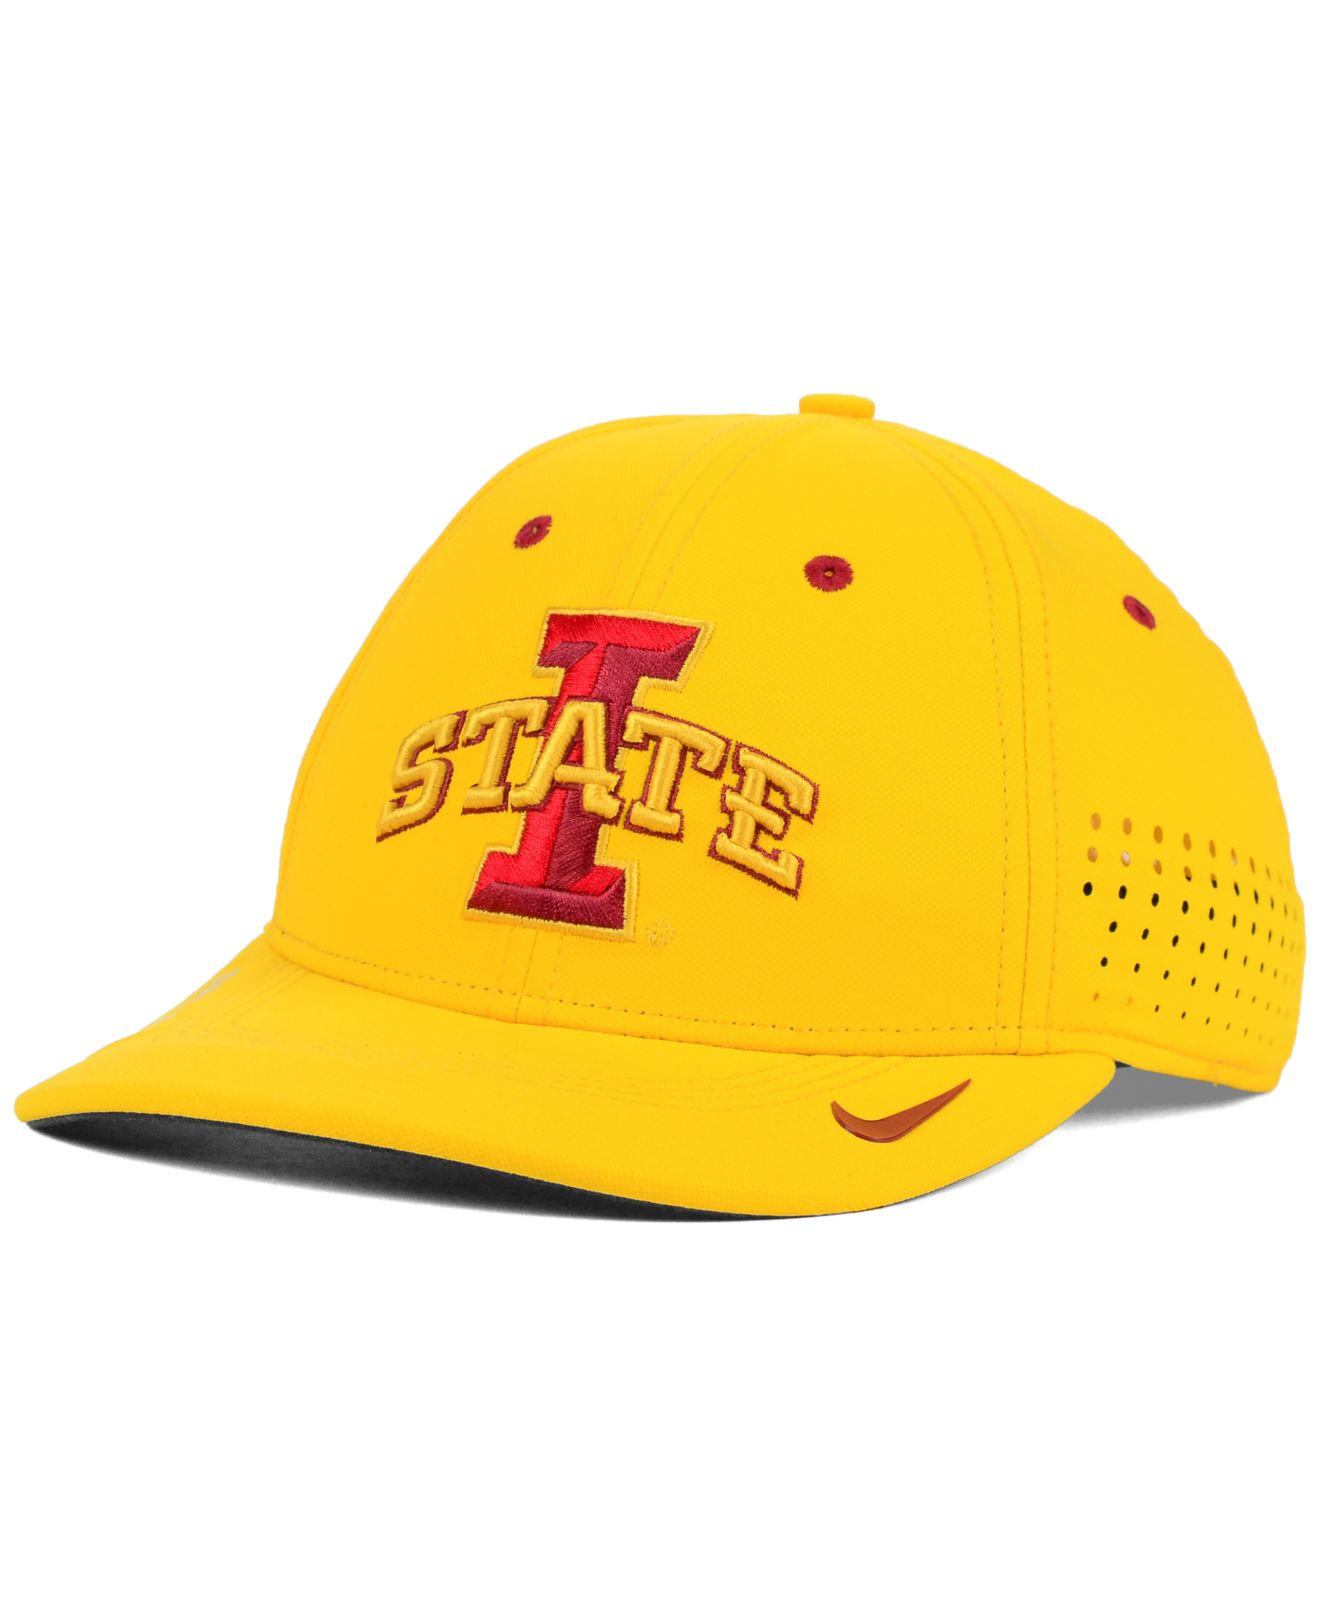 save off 2bad8 b3148 Lyst - Nike Iowa State Cyclones Sideline Cap in Yellow for Men